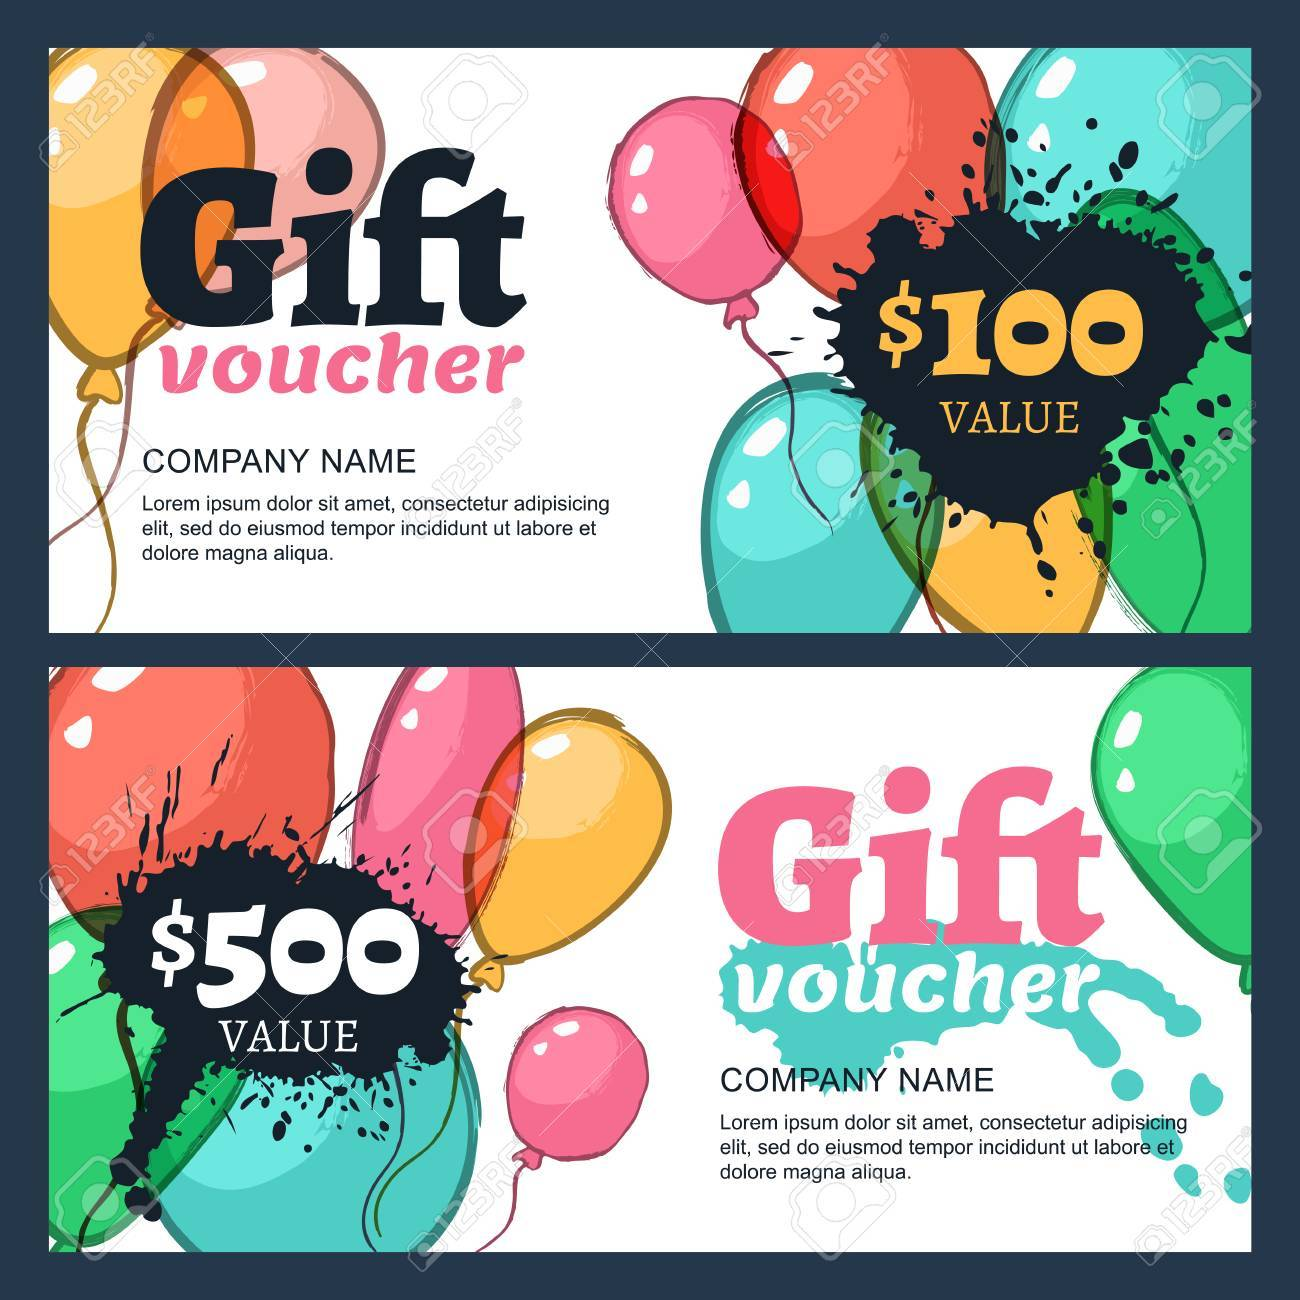 Vector gift voucher with watercolor air balloons business card business card template abstract creative background for gift card concept for flyer banner design event agency celebration party reheart Choice Image